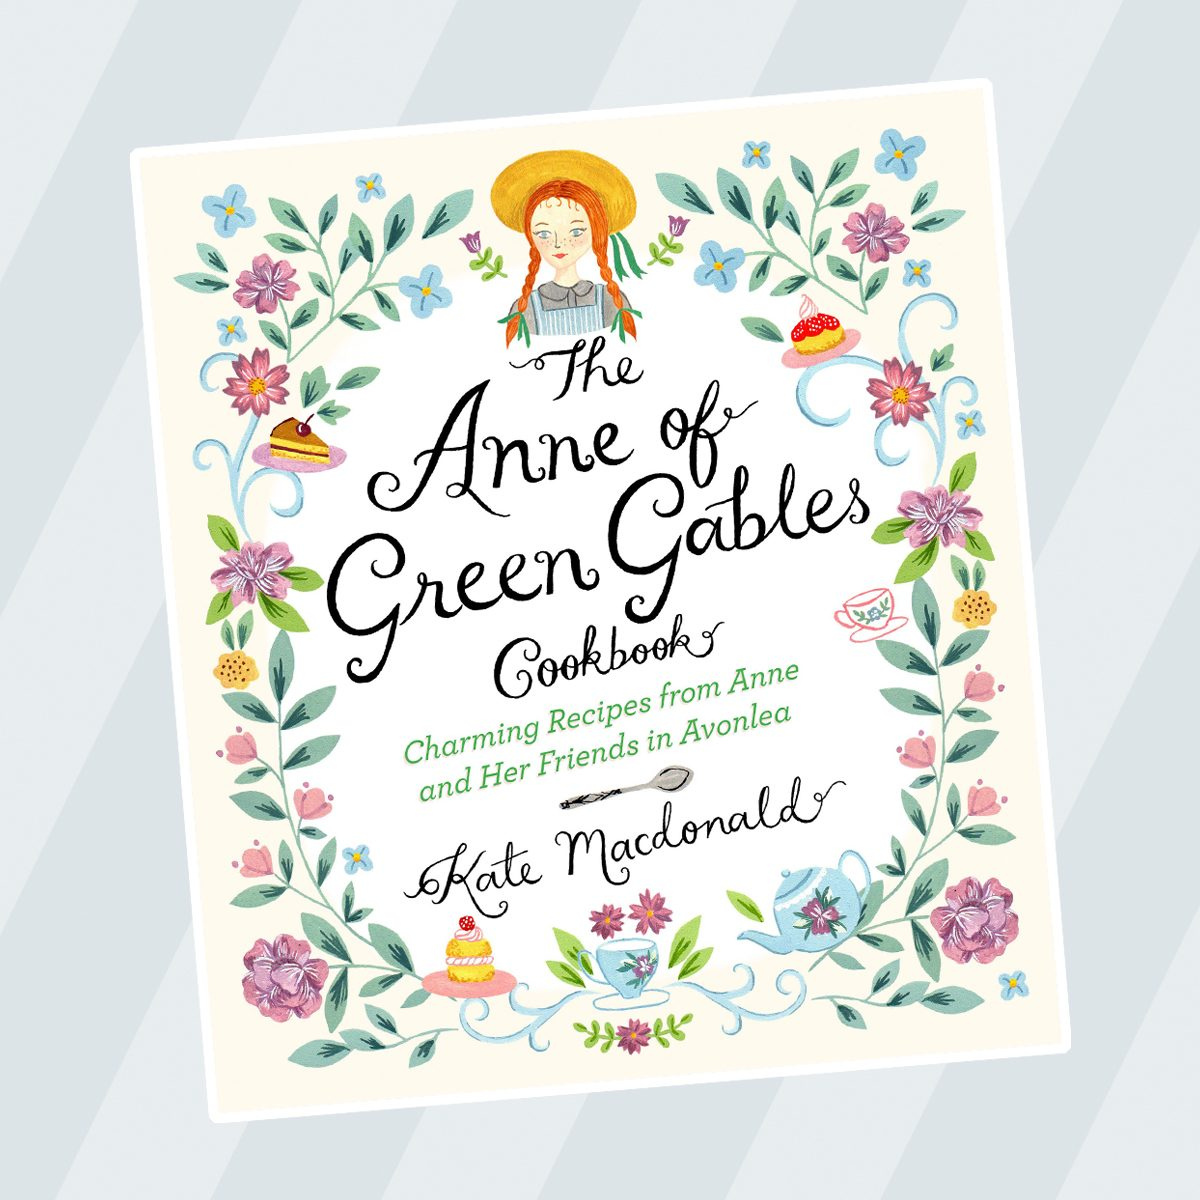 The Anne of Green Gables Cookbook: Charming Recipes from Anne and Her Friends in Avonlea Hardcover – September 19, 2017